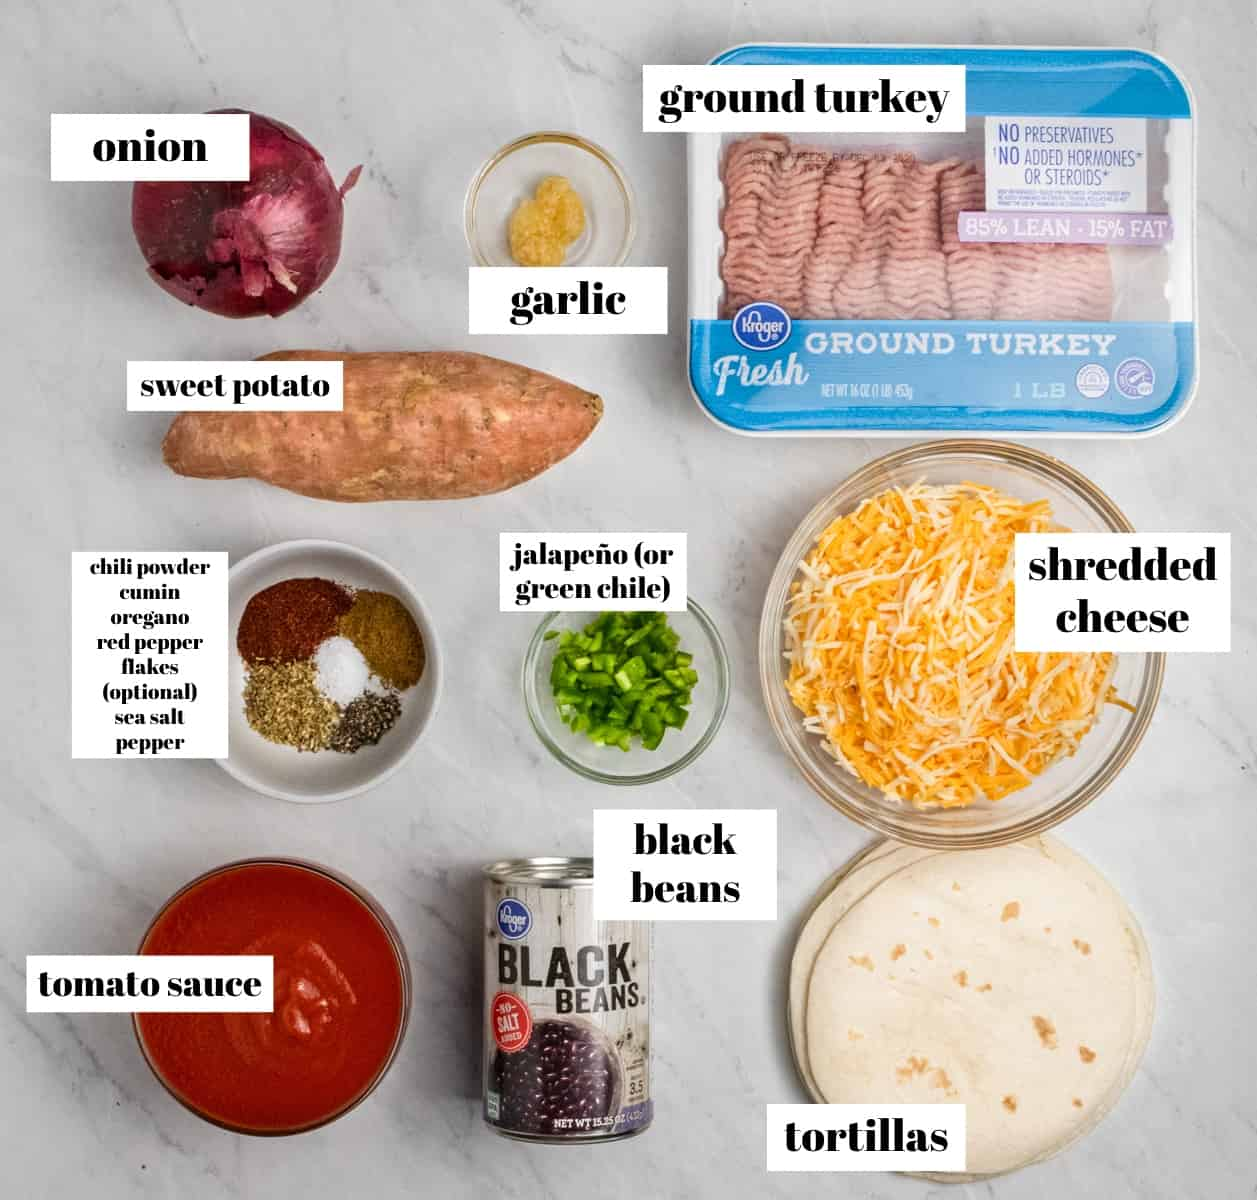 Turkey, beans, cheese, spices and other ingredients on counter.